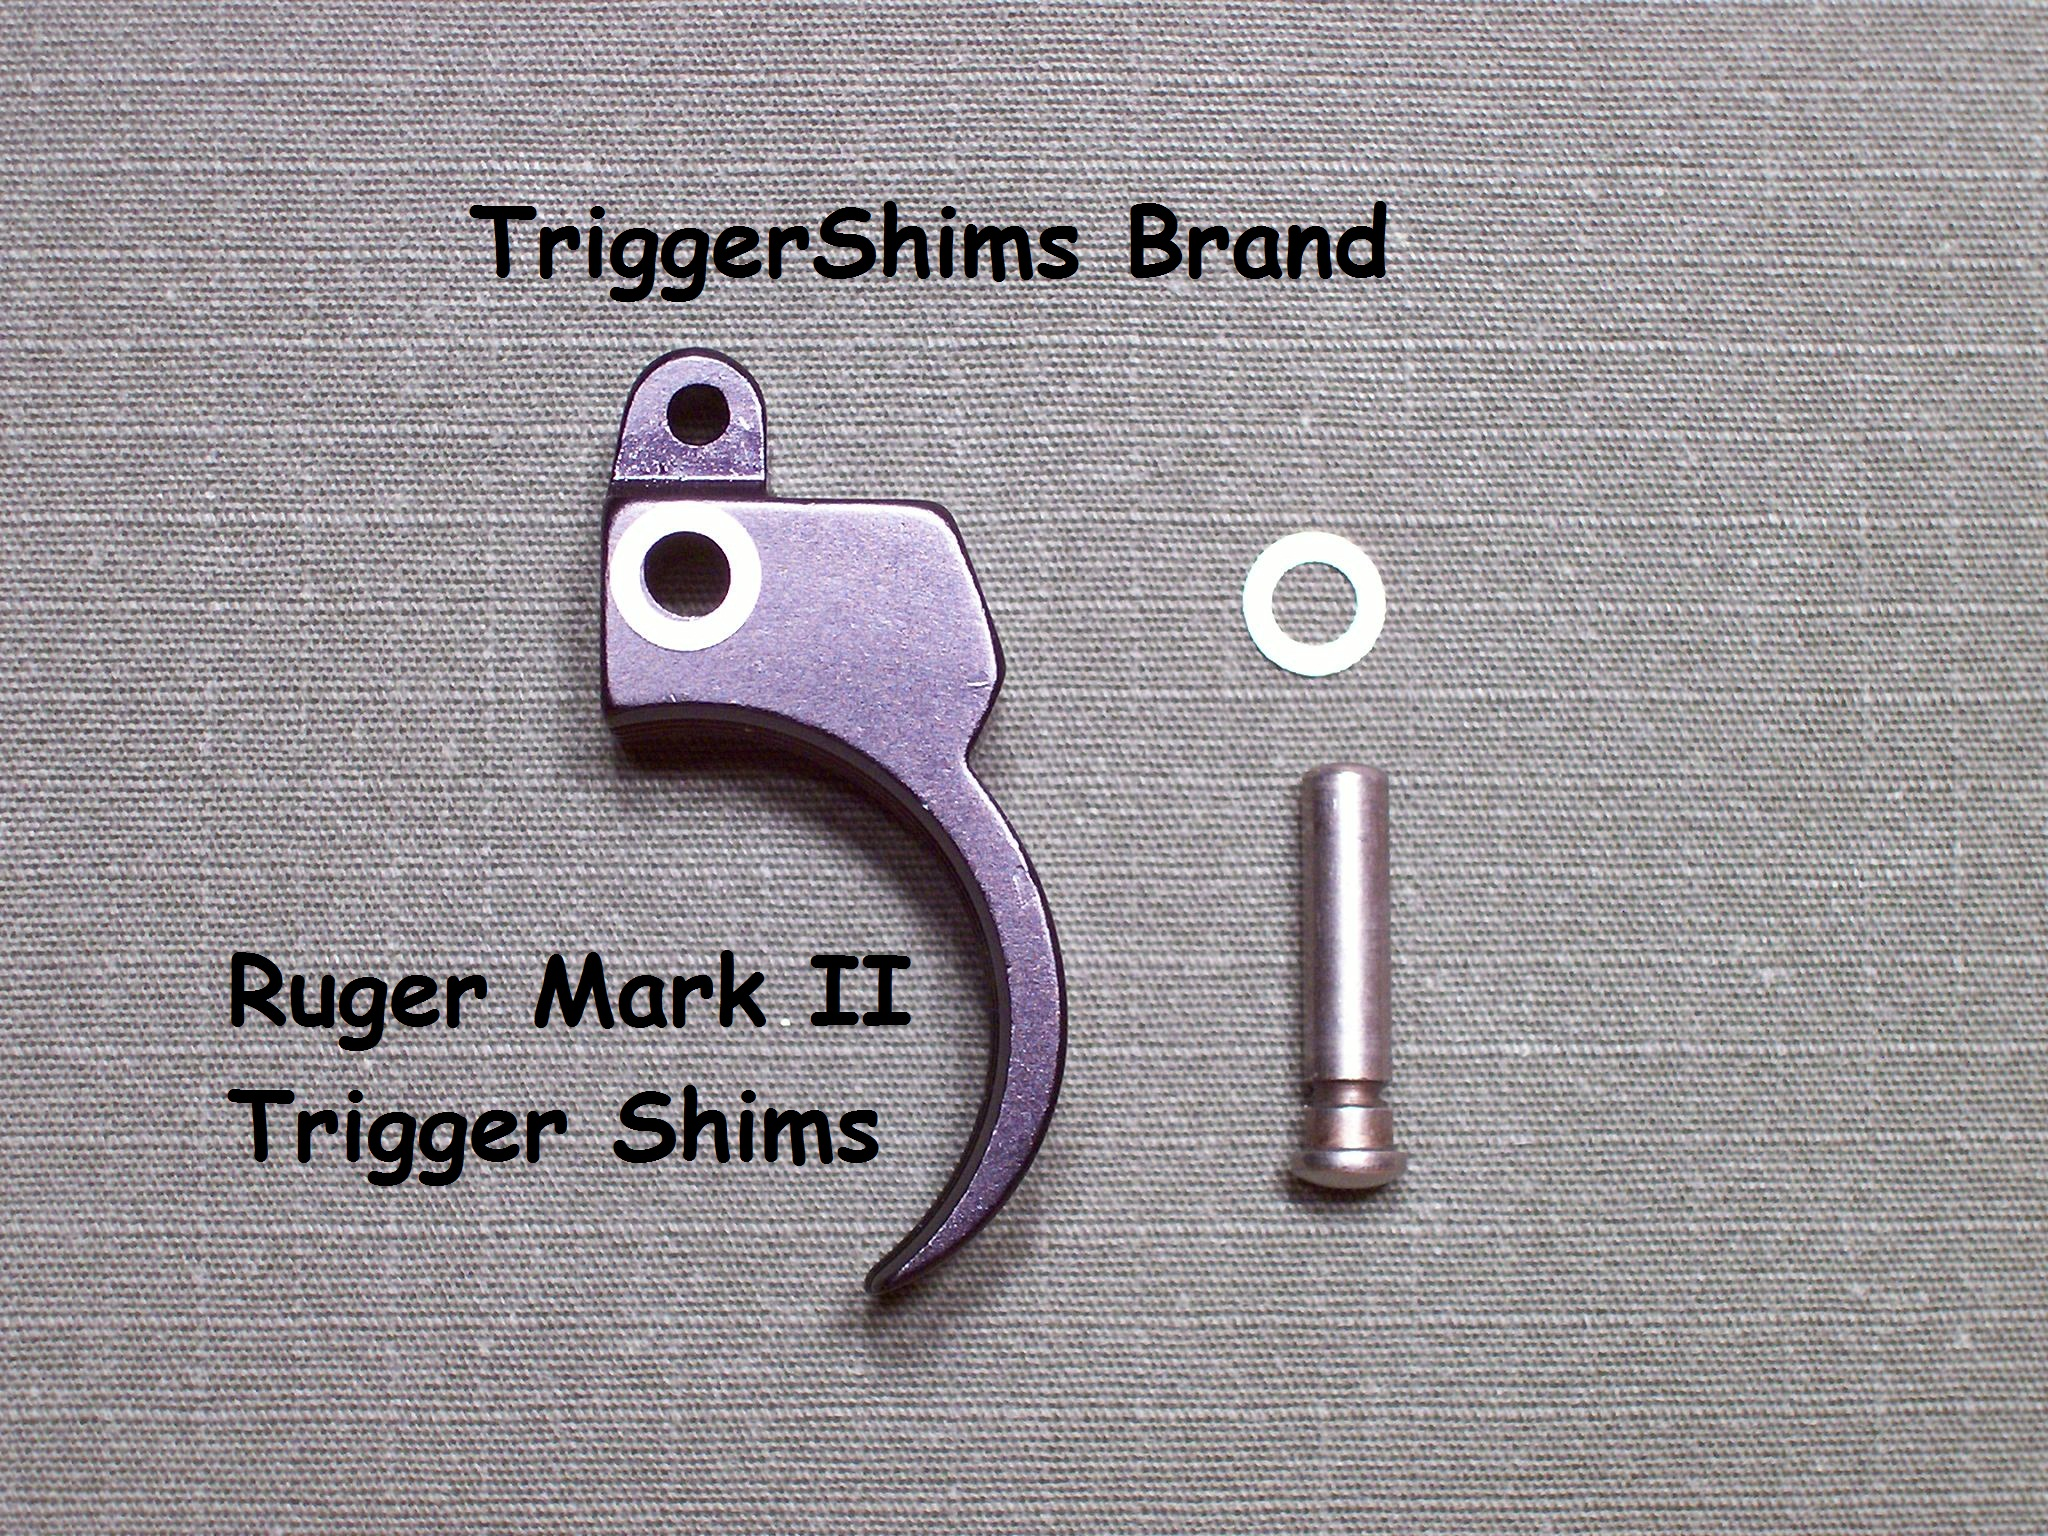 Mark II Trigger Shims